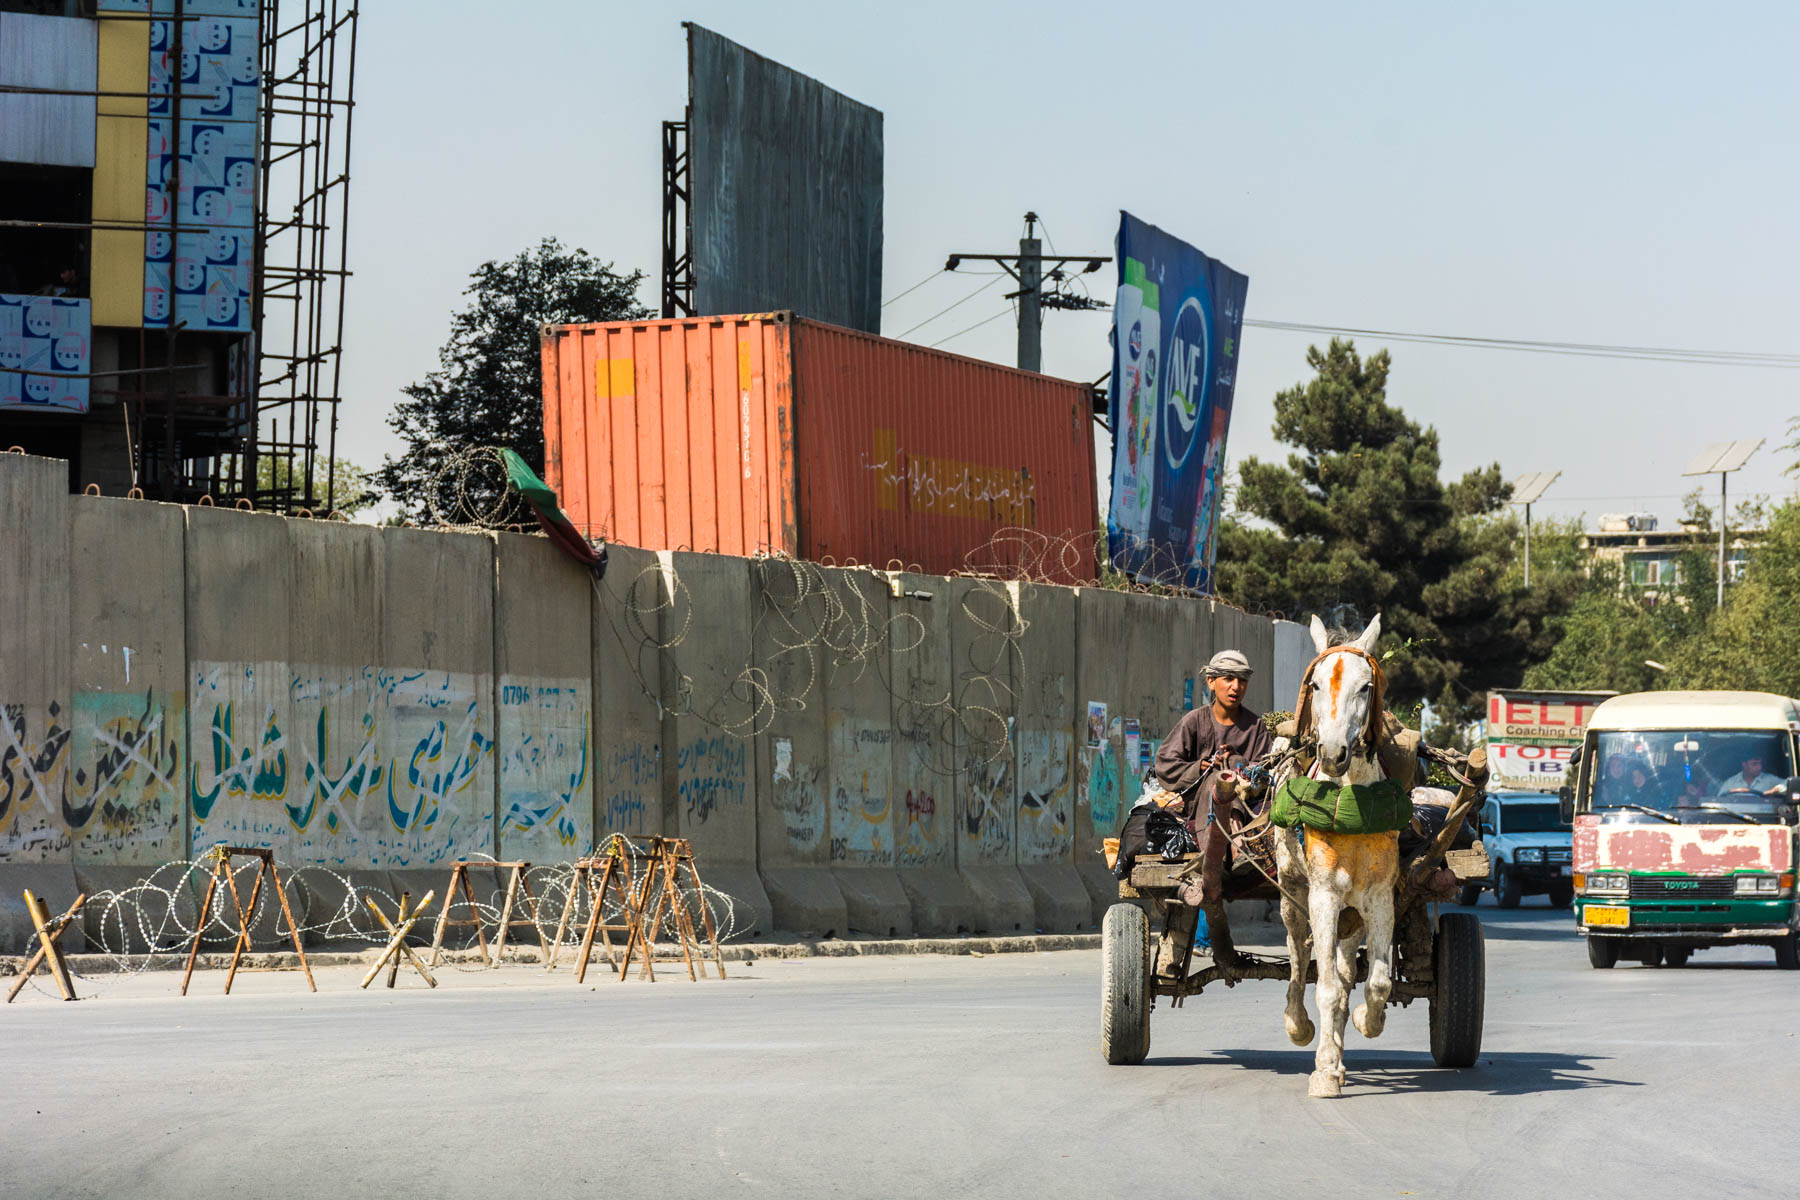 Safety in Afghanistan can be dubious at best - Lost With Purpose